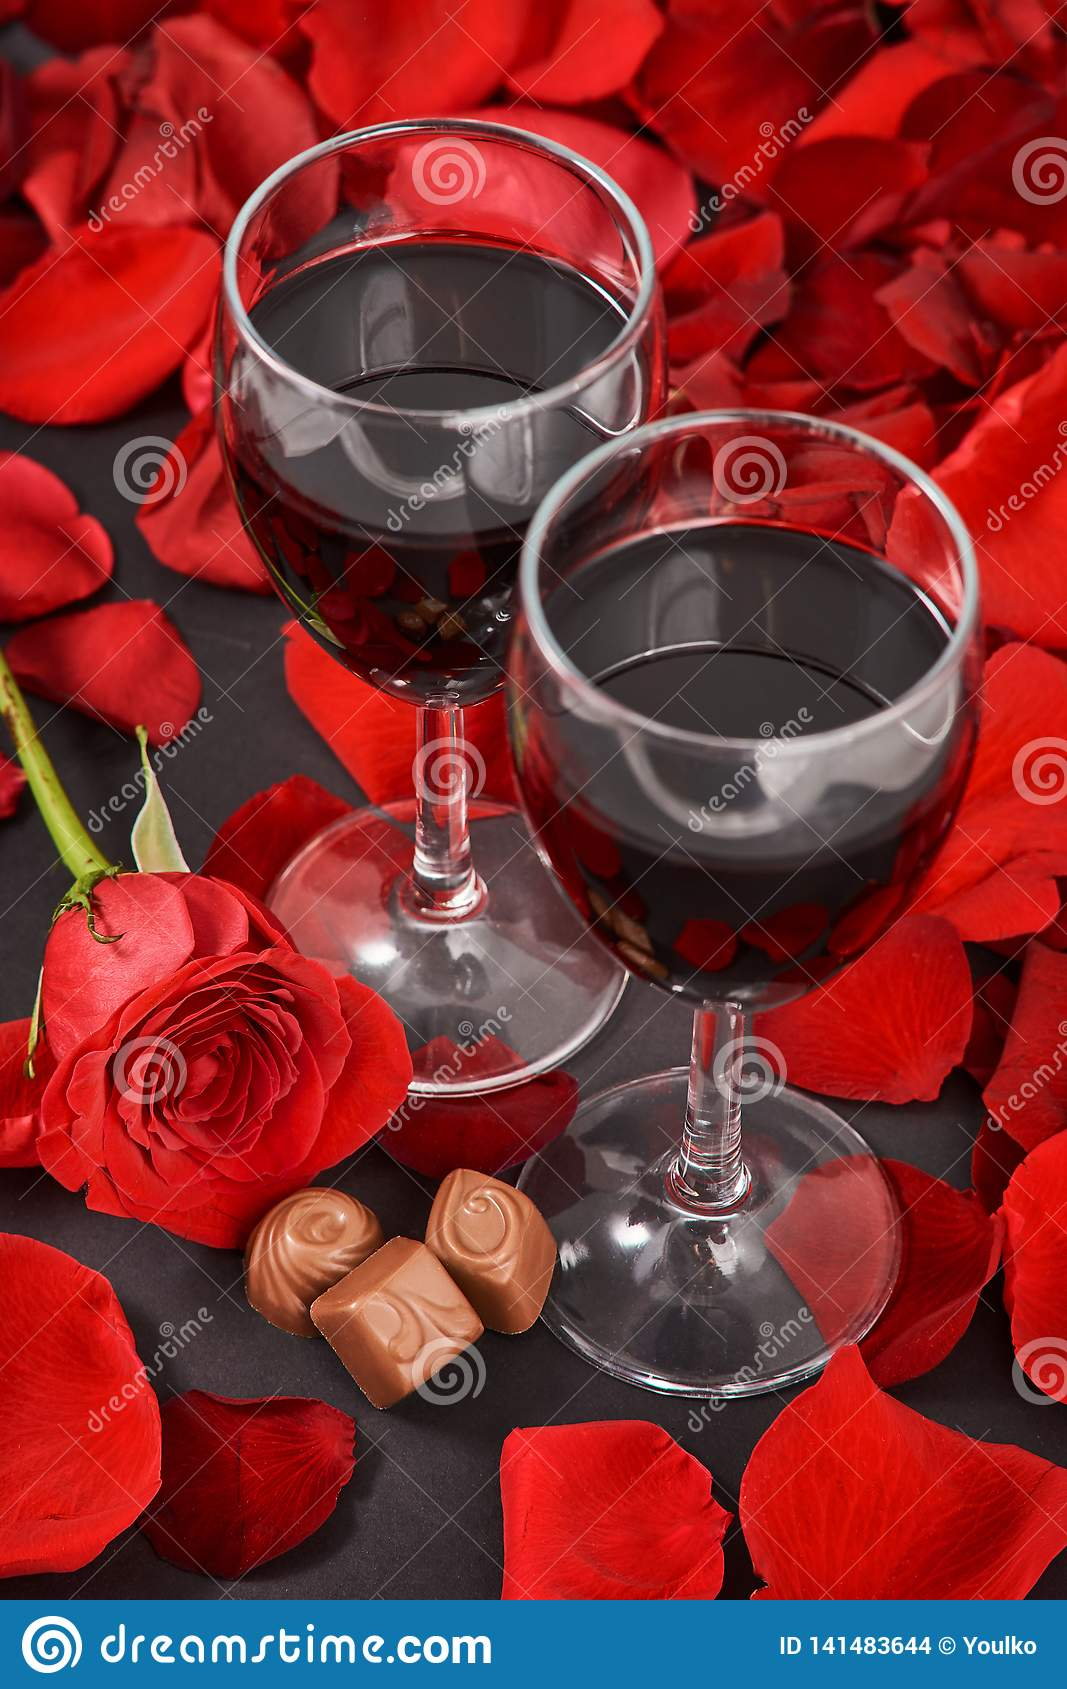 two glasses of wine, rose, petals and chocolates on a black background